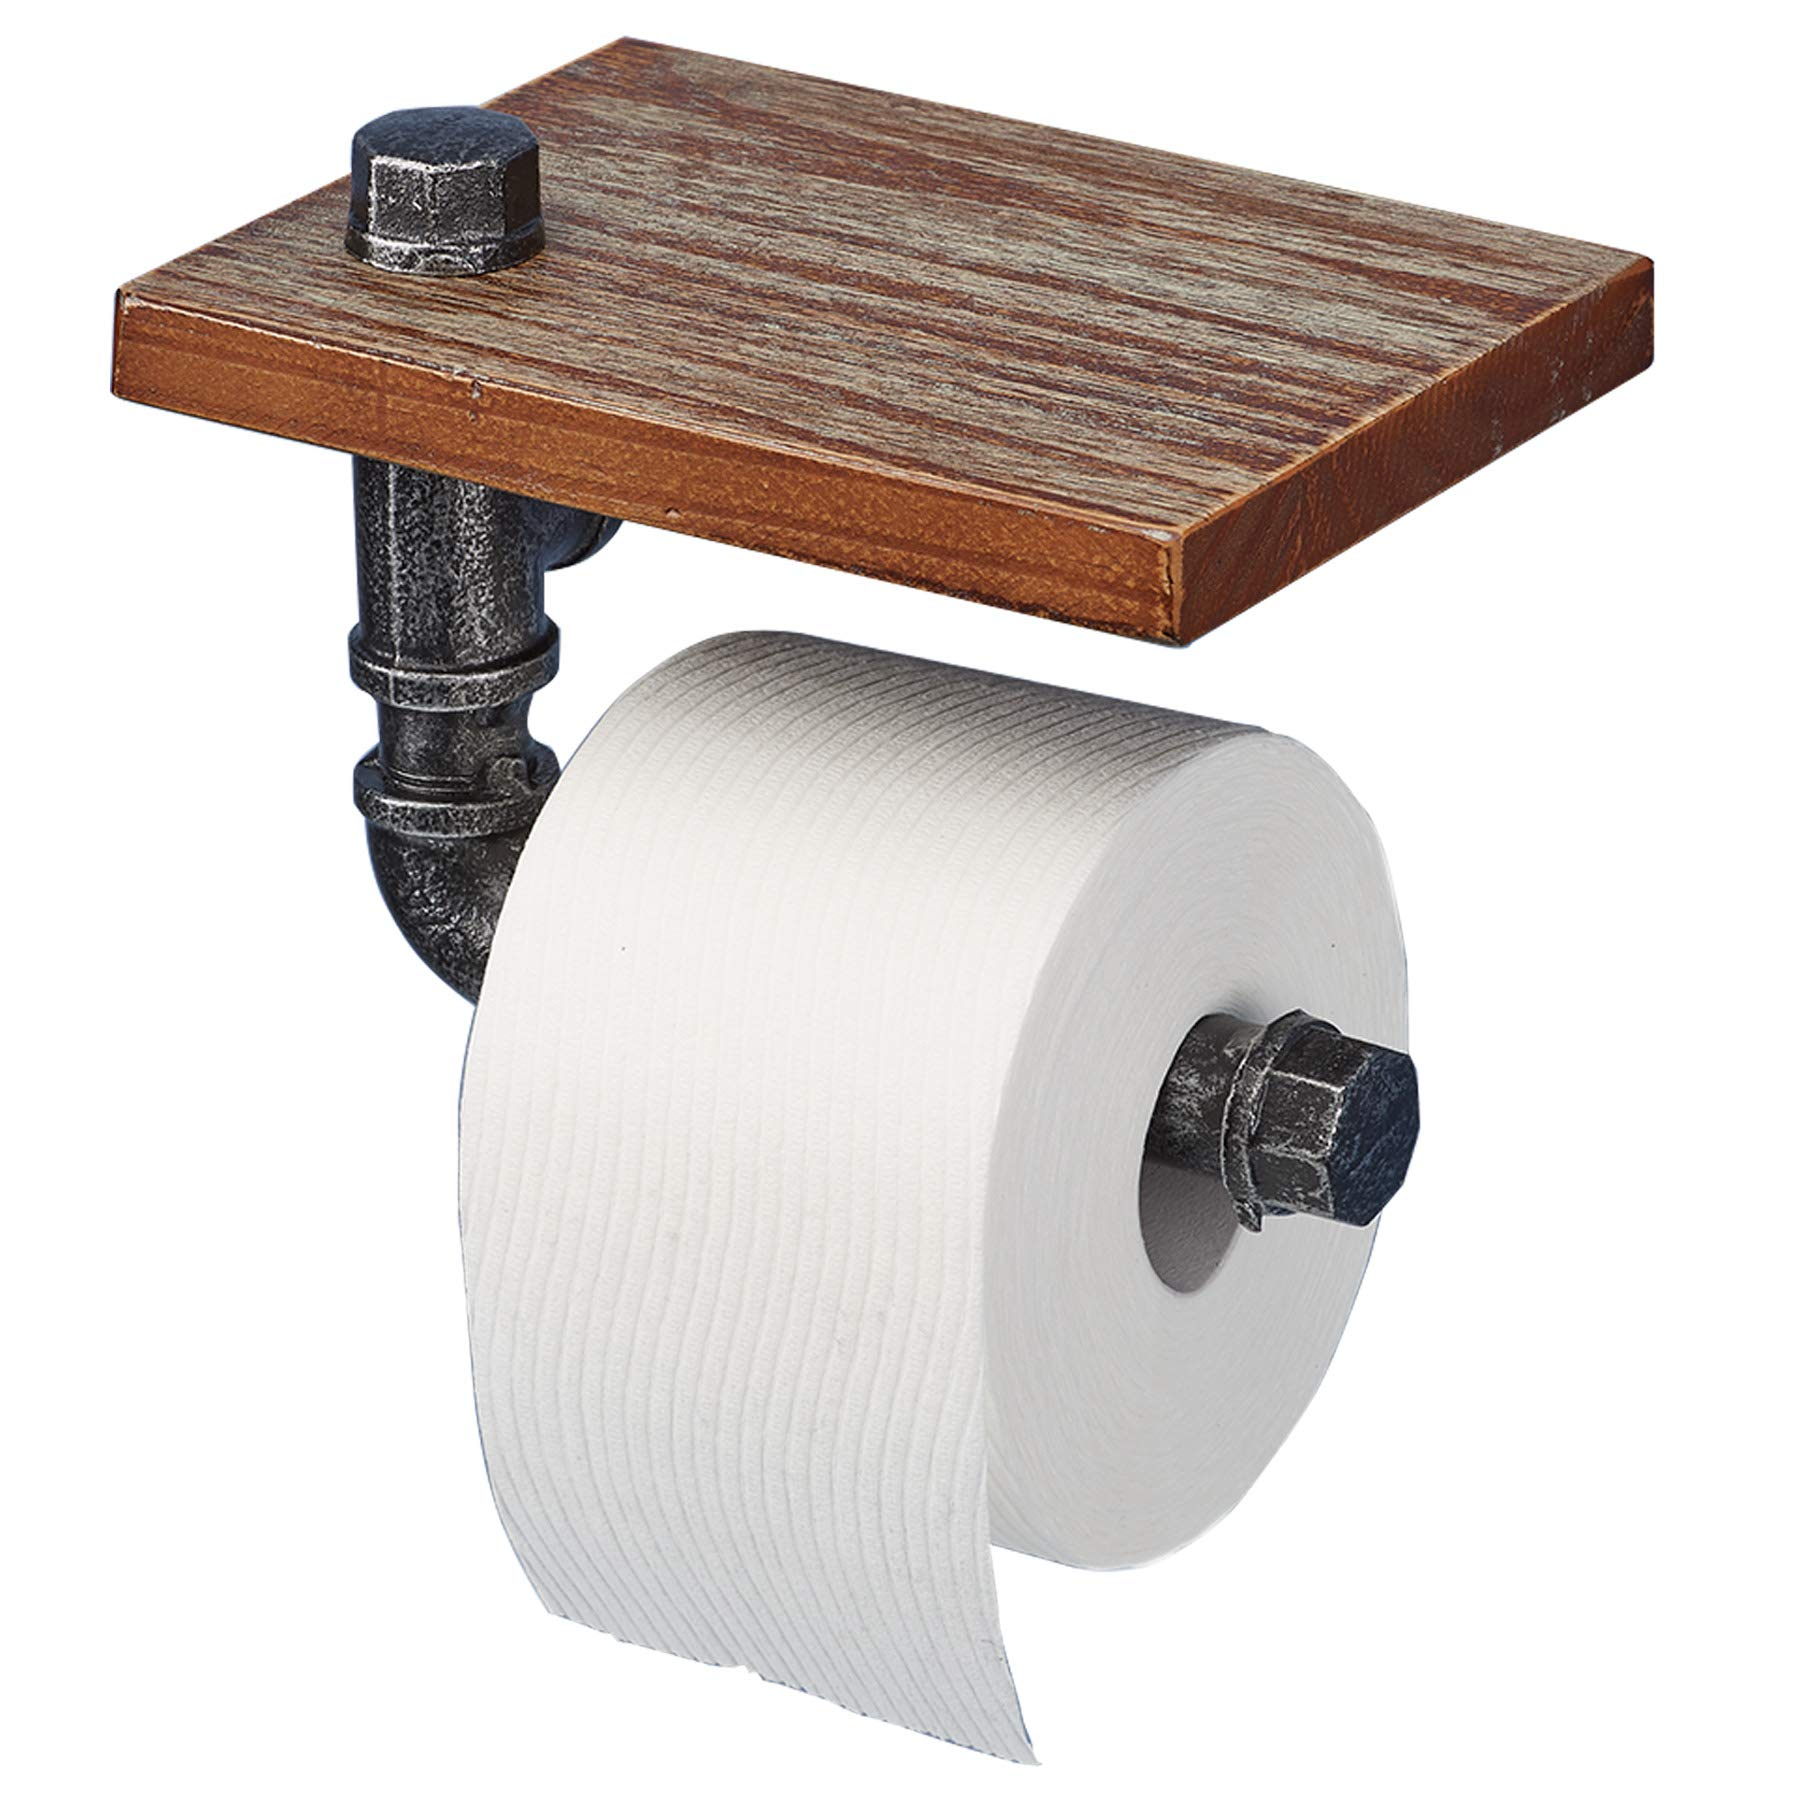 """Barnyard Designs Industrial Wall Mounted Toilet Paper Holder with Shelf - Rustic Vintage Decorative Toilet Roll Holder with Shelf 8"""" x 6"""""""